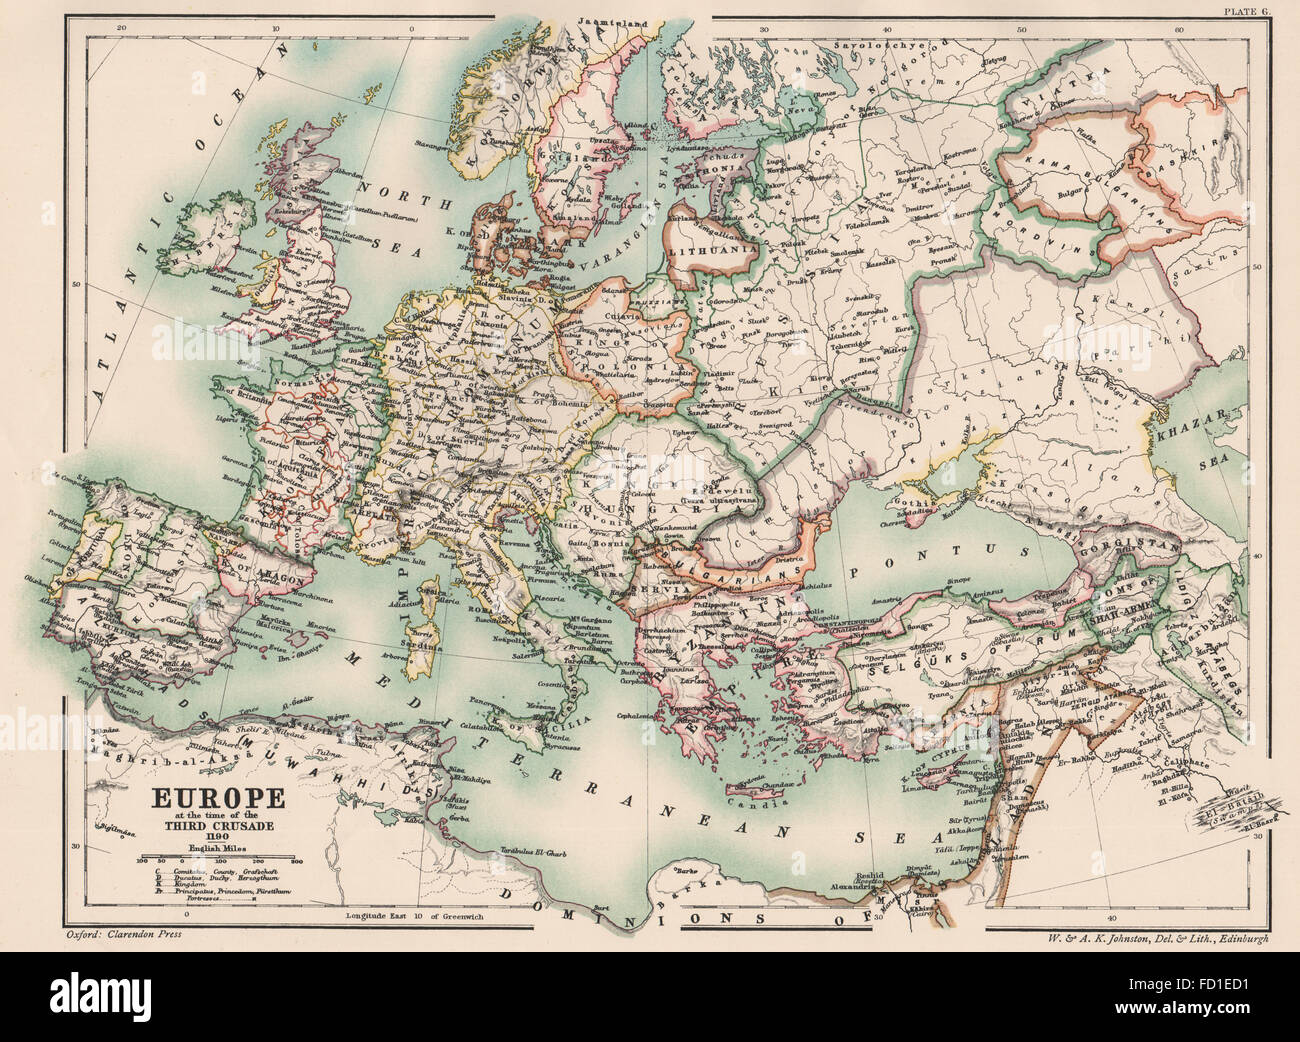 Historical map of the roman empire stock photos historical map of europeholy roman empire at the time of the third crusade 1190 1902 gumiabroncs Image collections